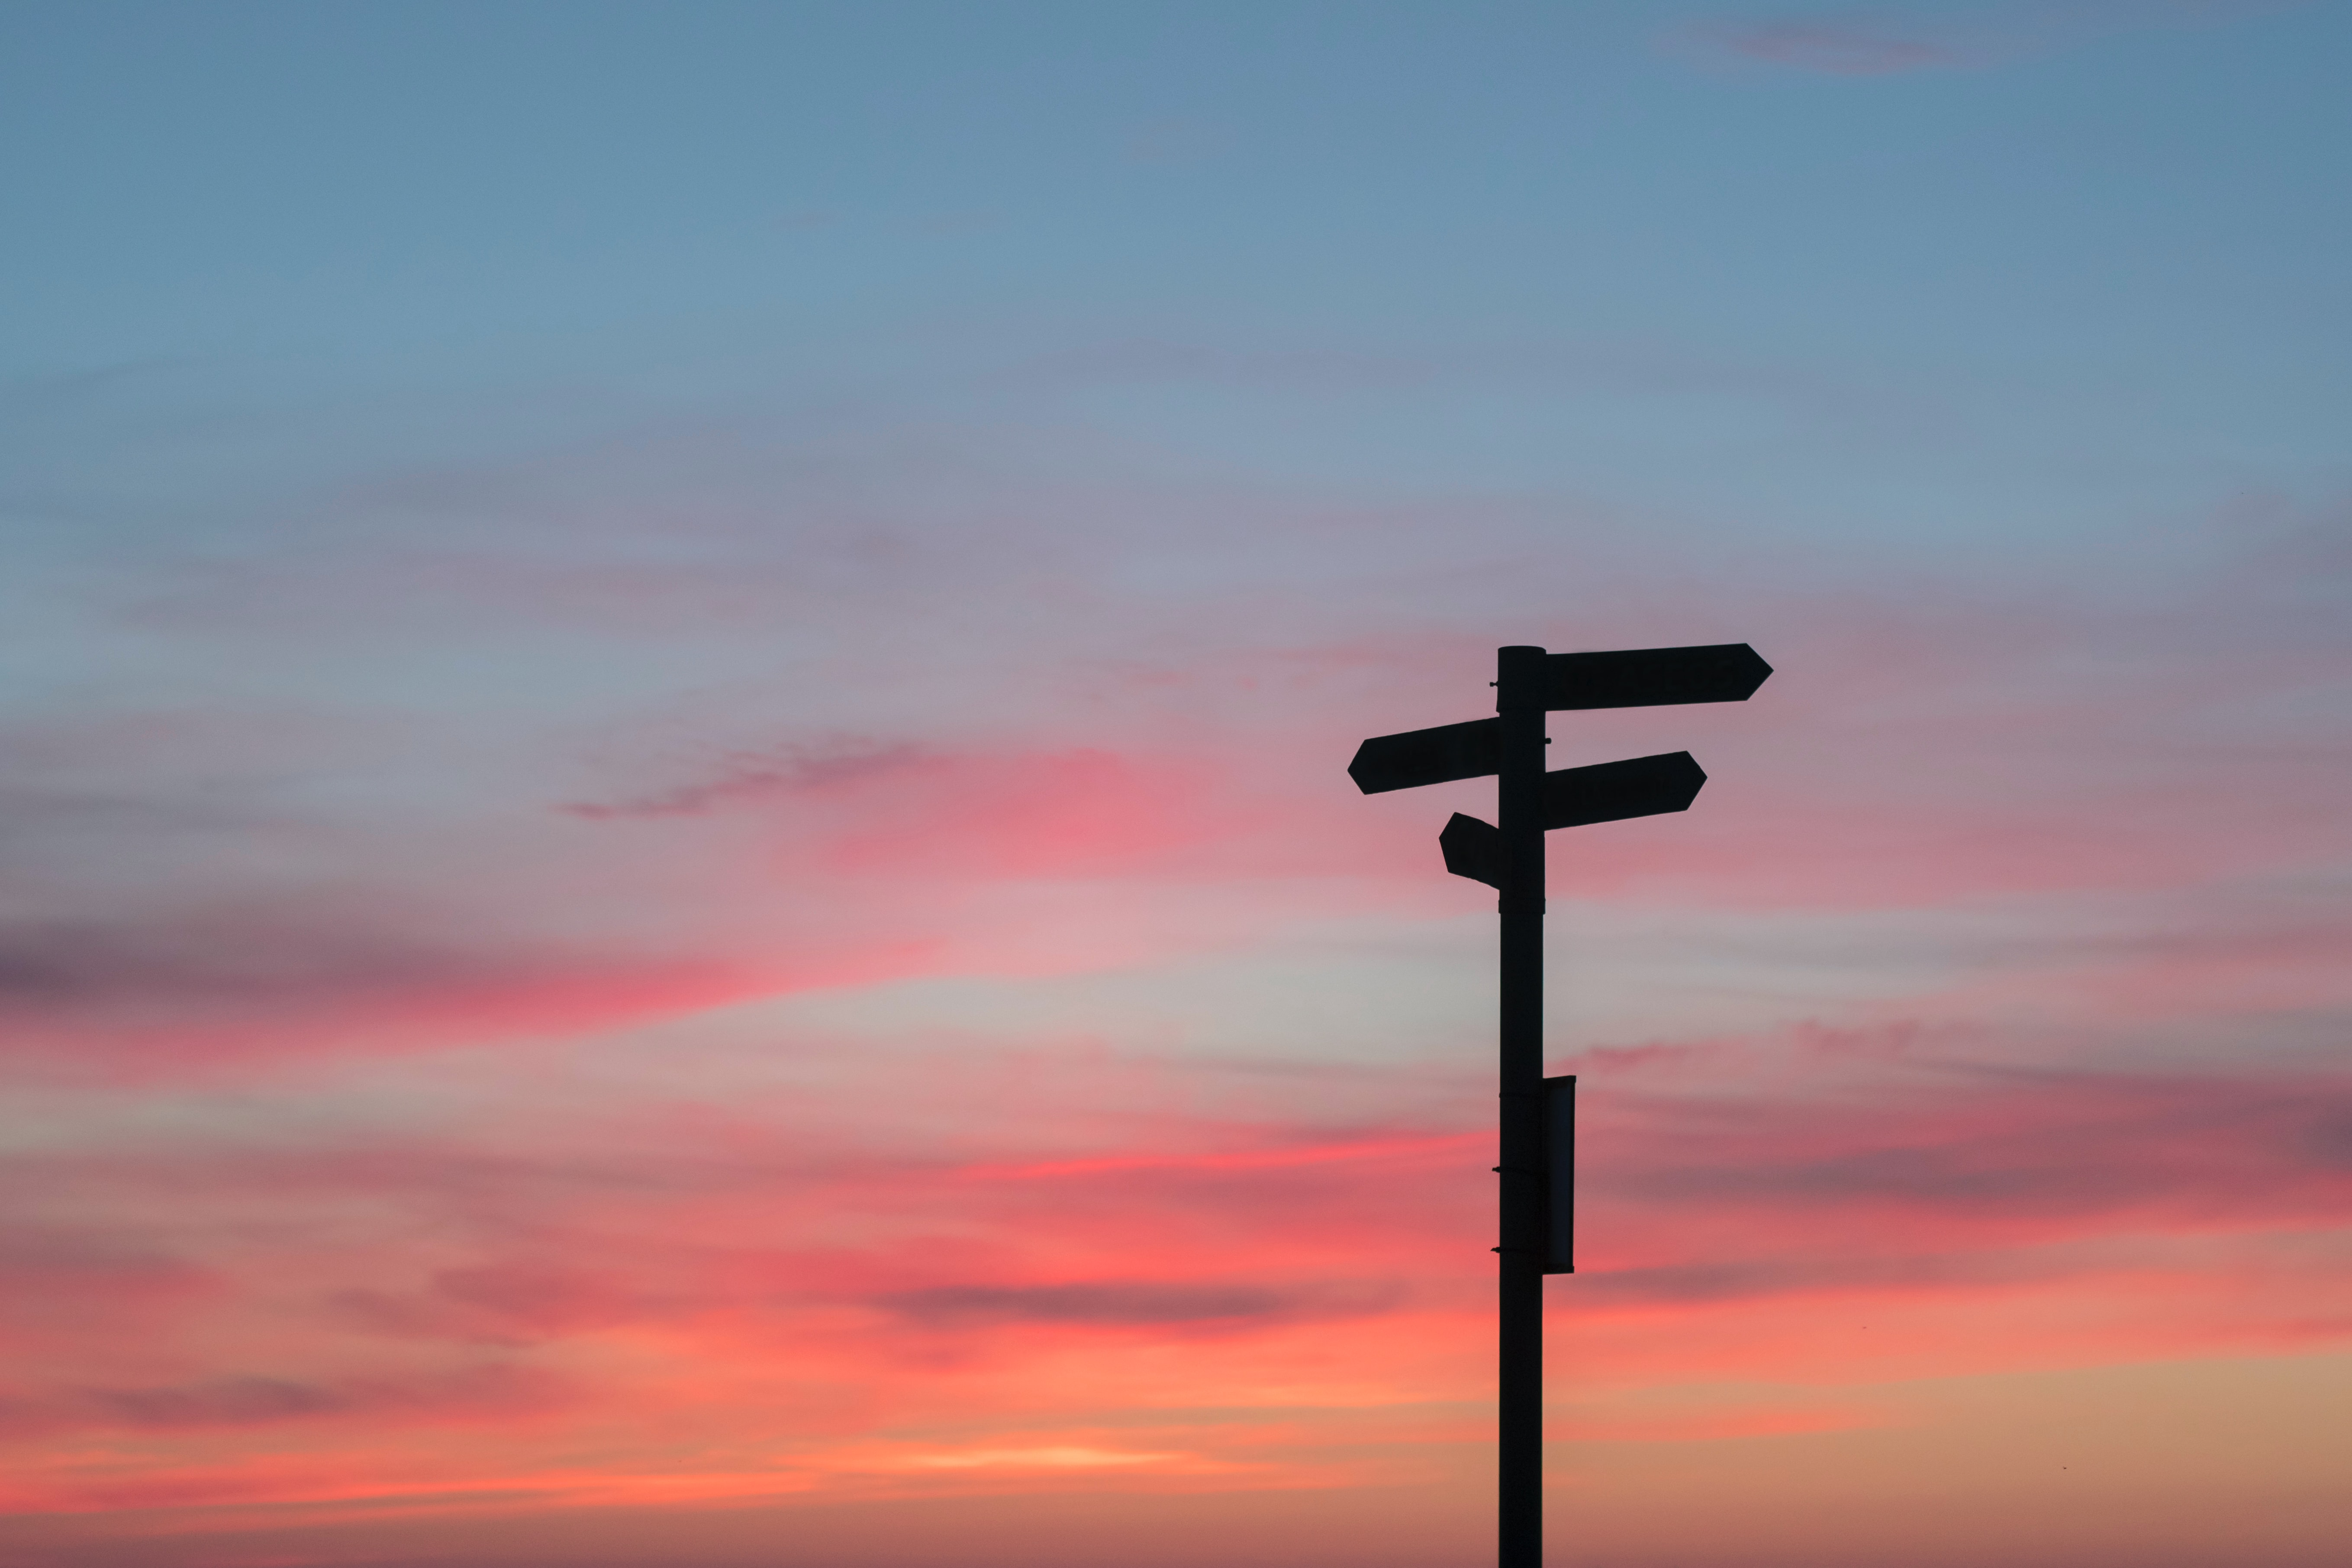 silhouette sign post with sunset or sunrise decisions planning 2021